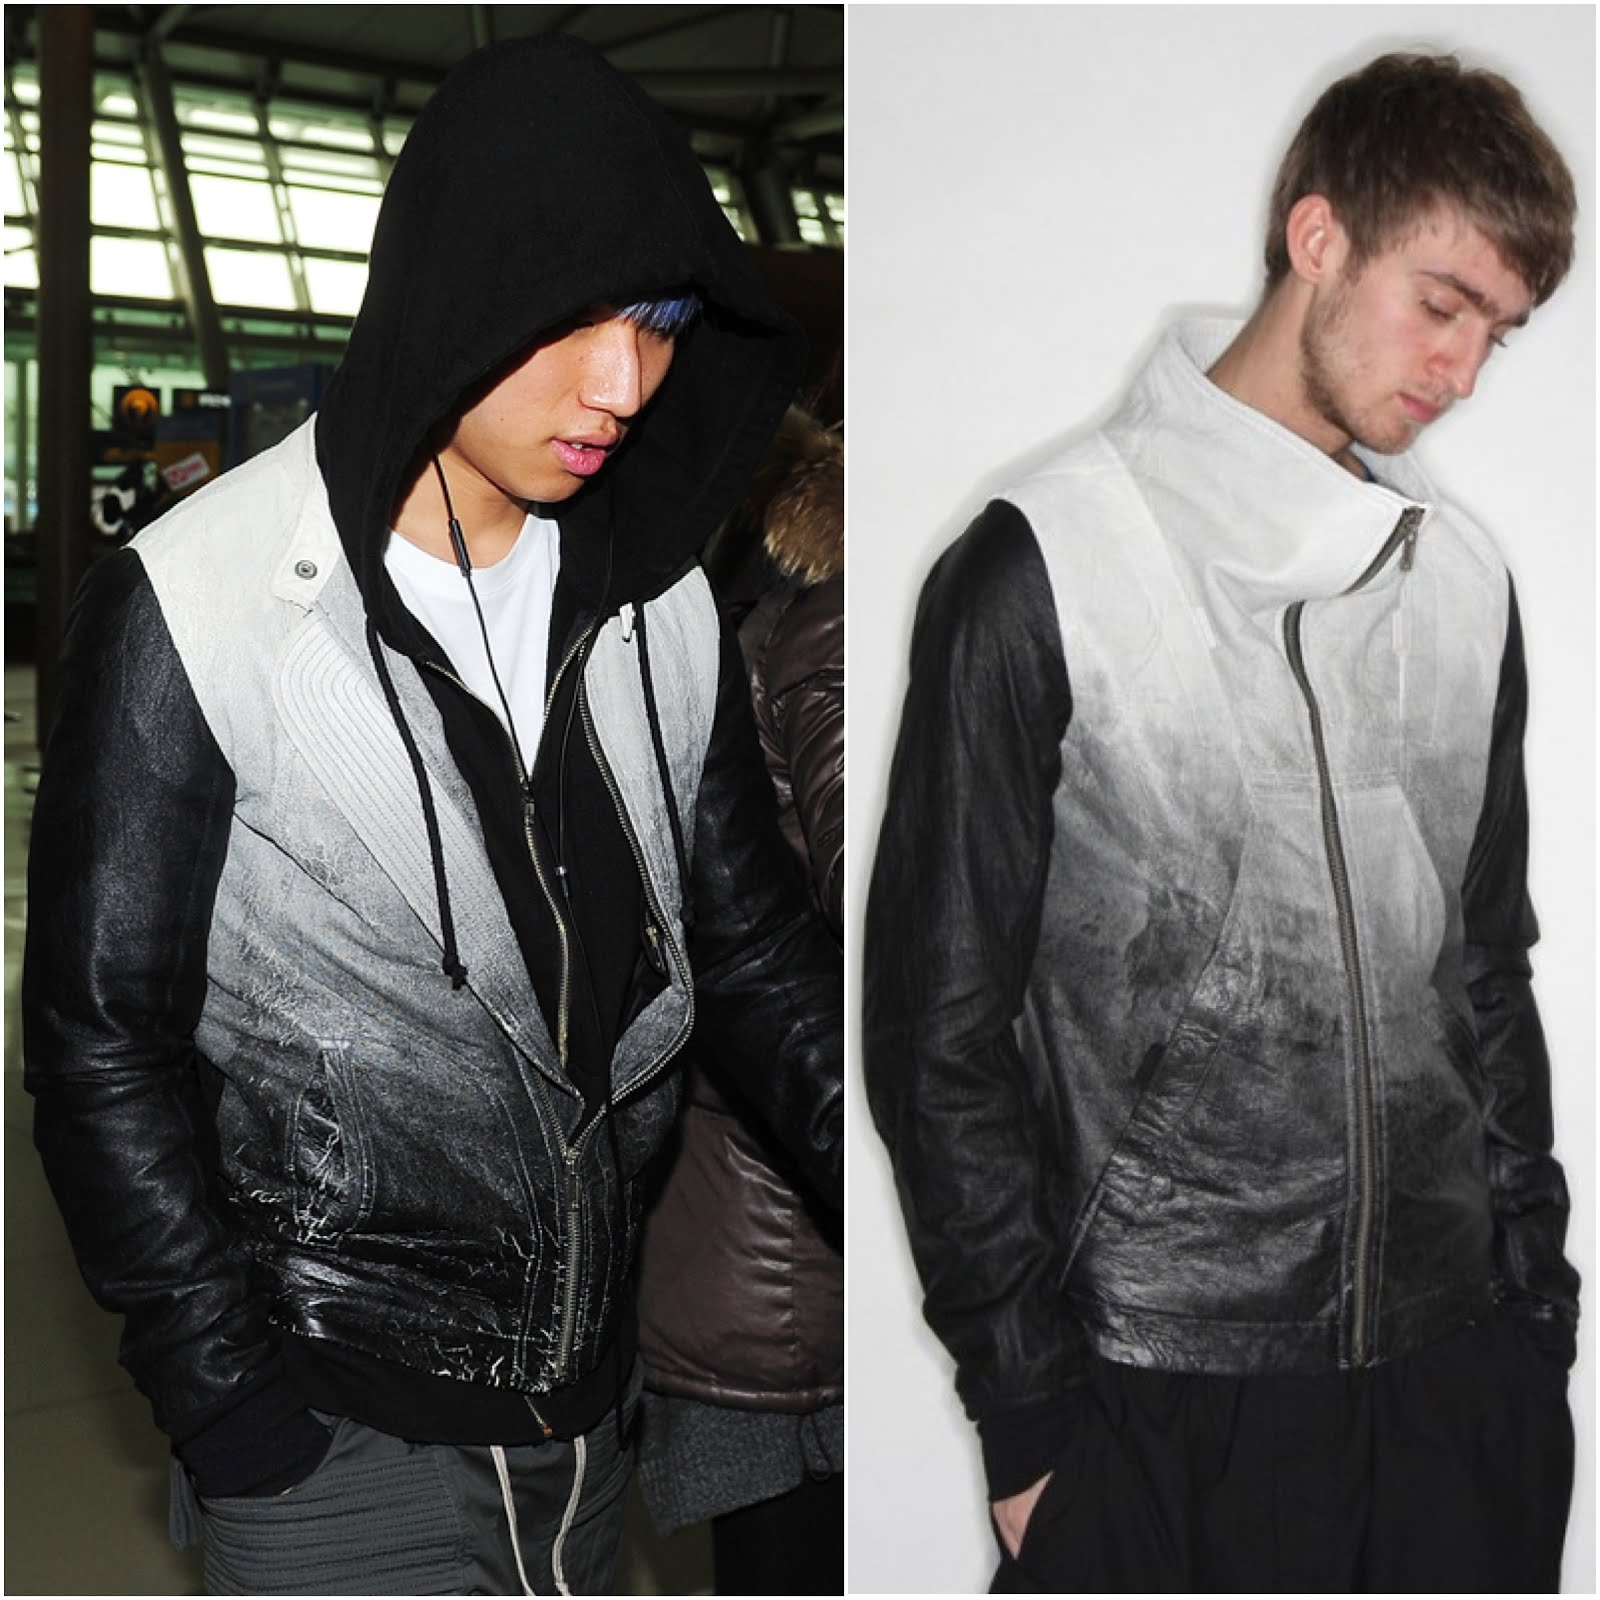 DaCheng from BigBang in Rick Owens - Incheon Airport